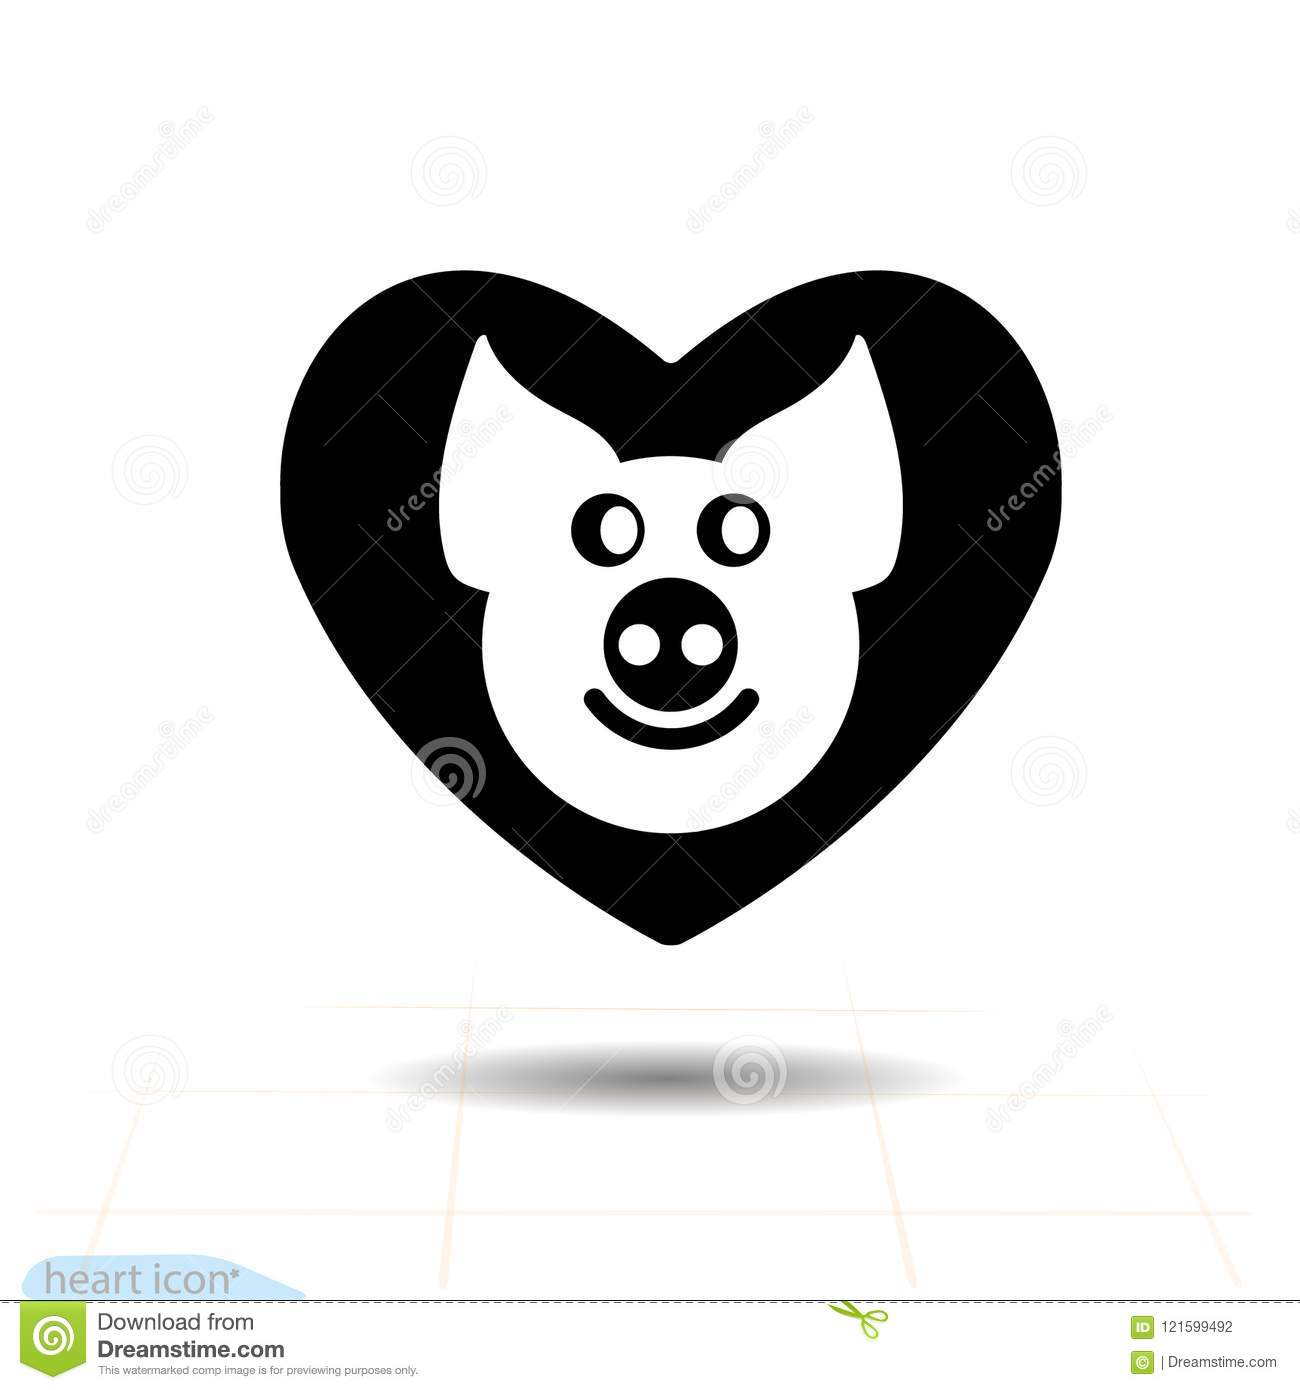 Cute Piggy In Heart Black Icon Love Symbol Valentines Day Sign